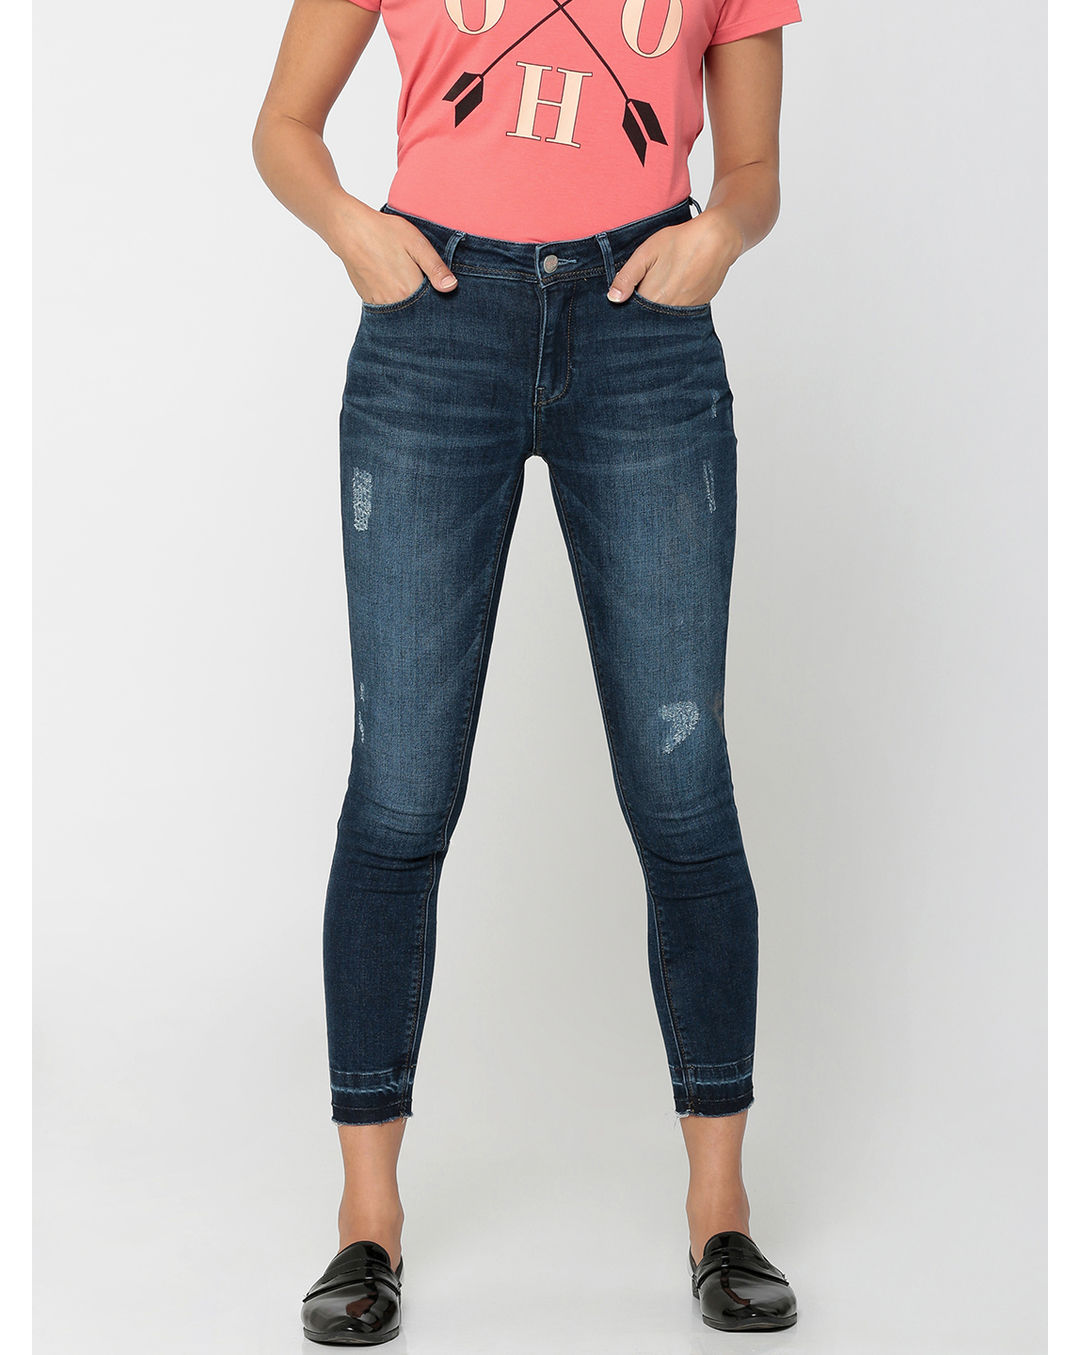 27805225 Buy ONLY Dark Blue High-Waist Distressed Slim Fit Jeans Online | ONLY